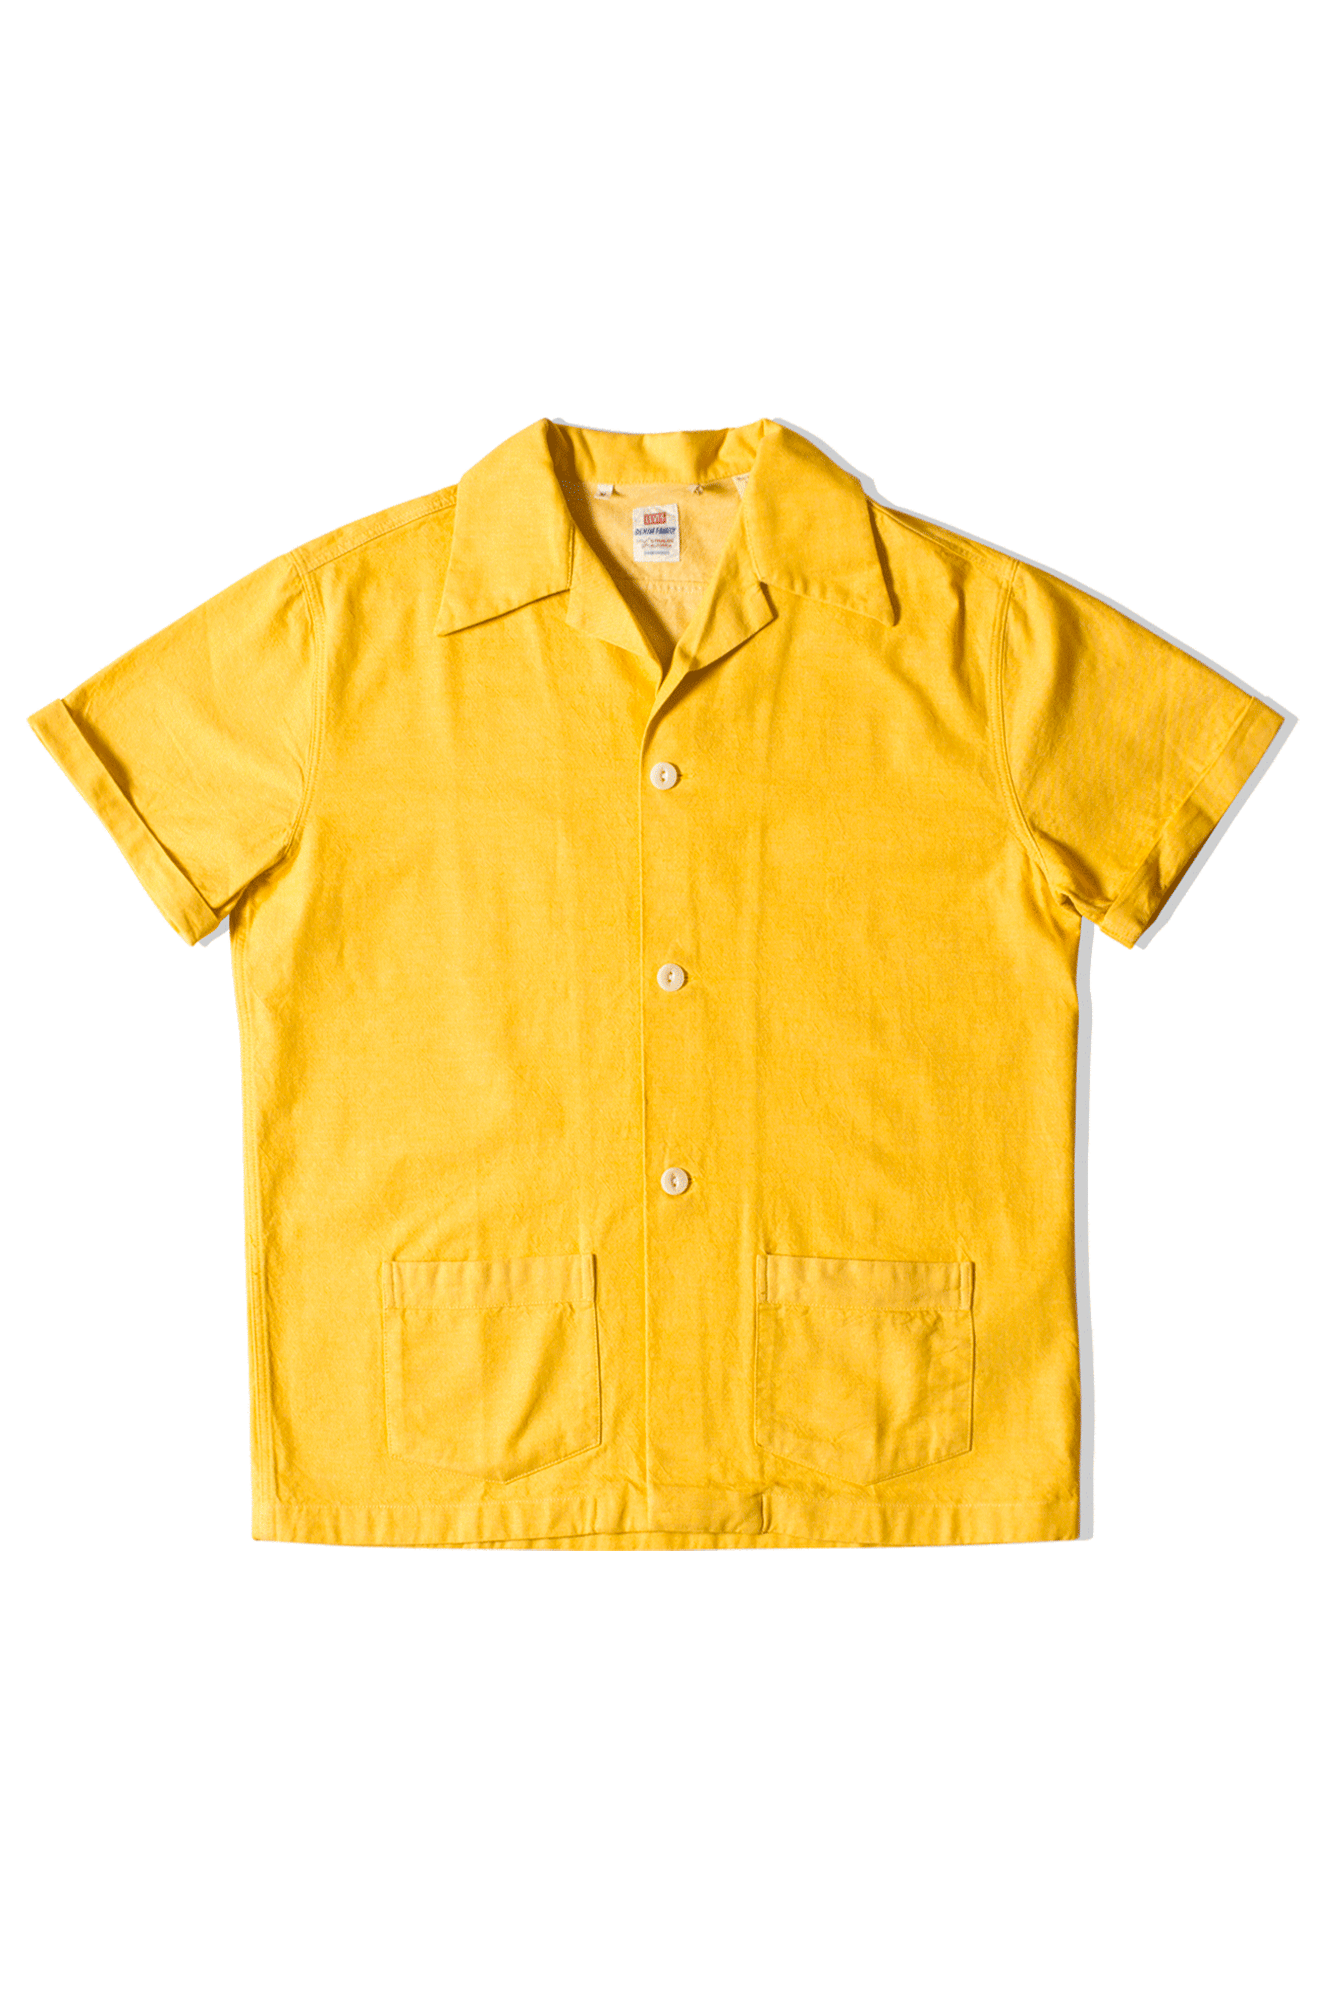 LVC Denim Family S/S Cornsilk Giallo